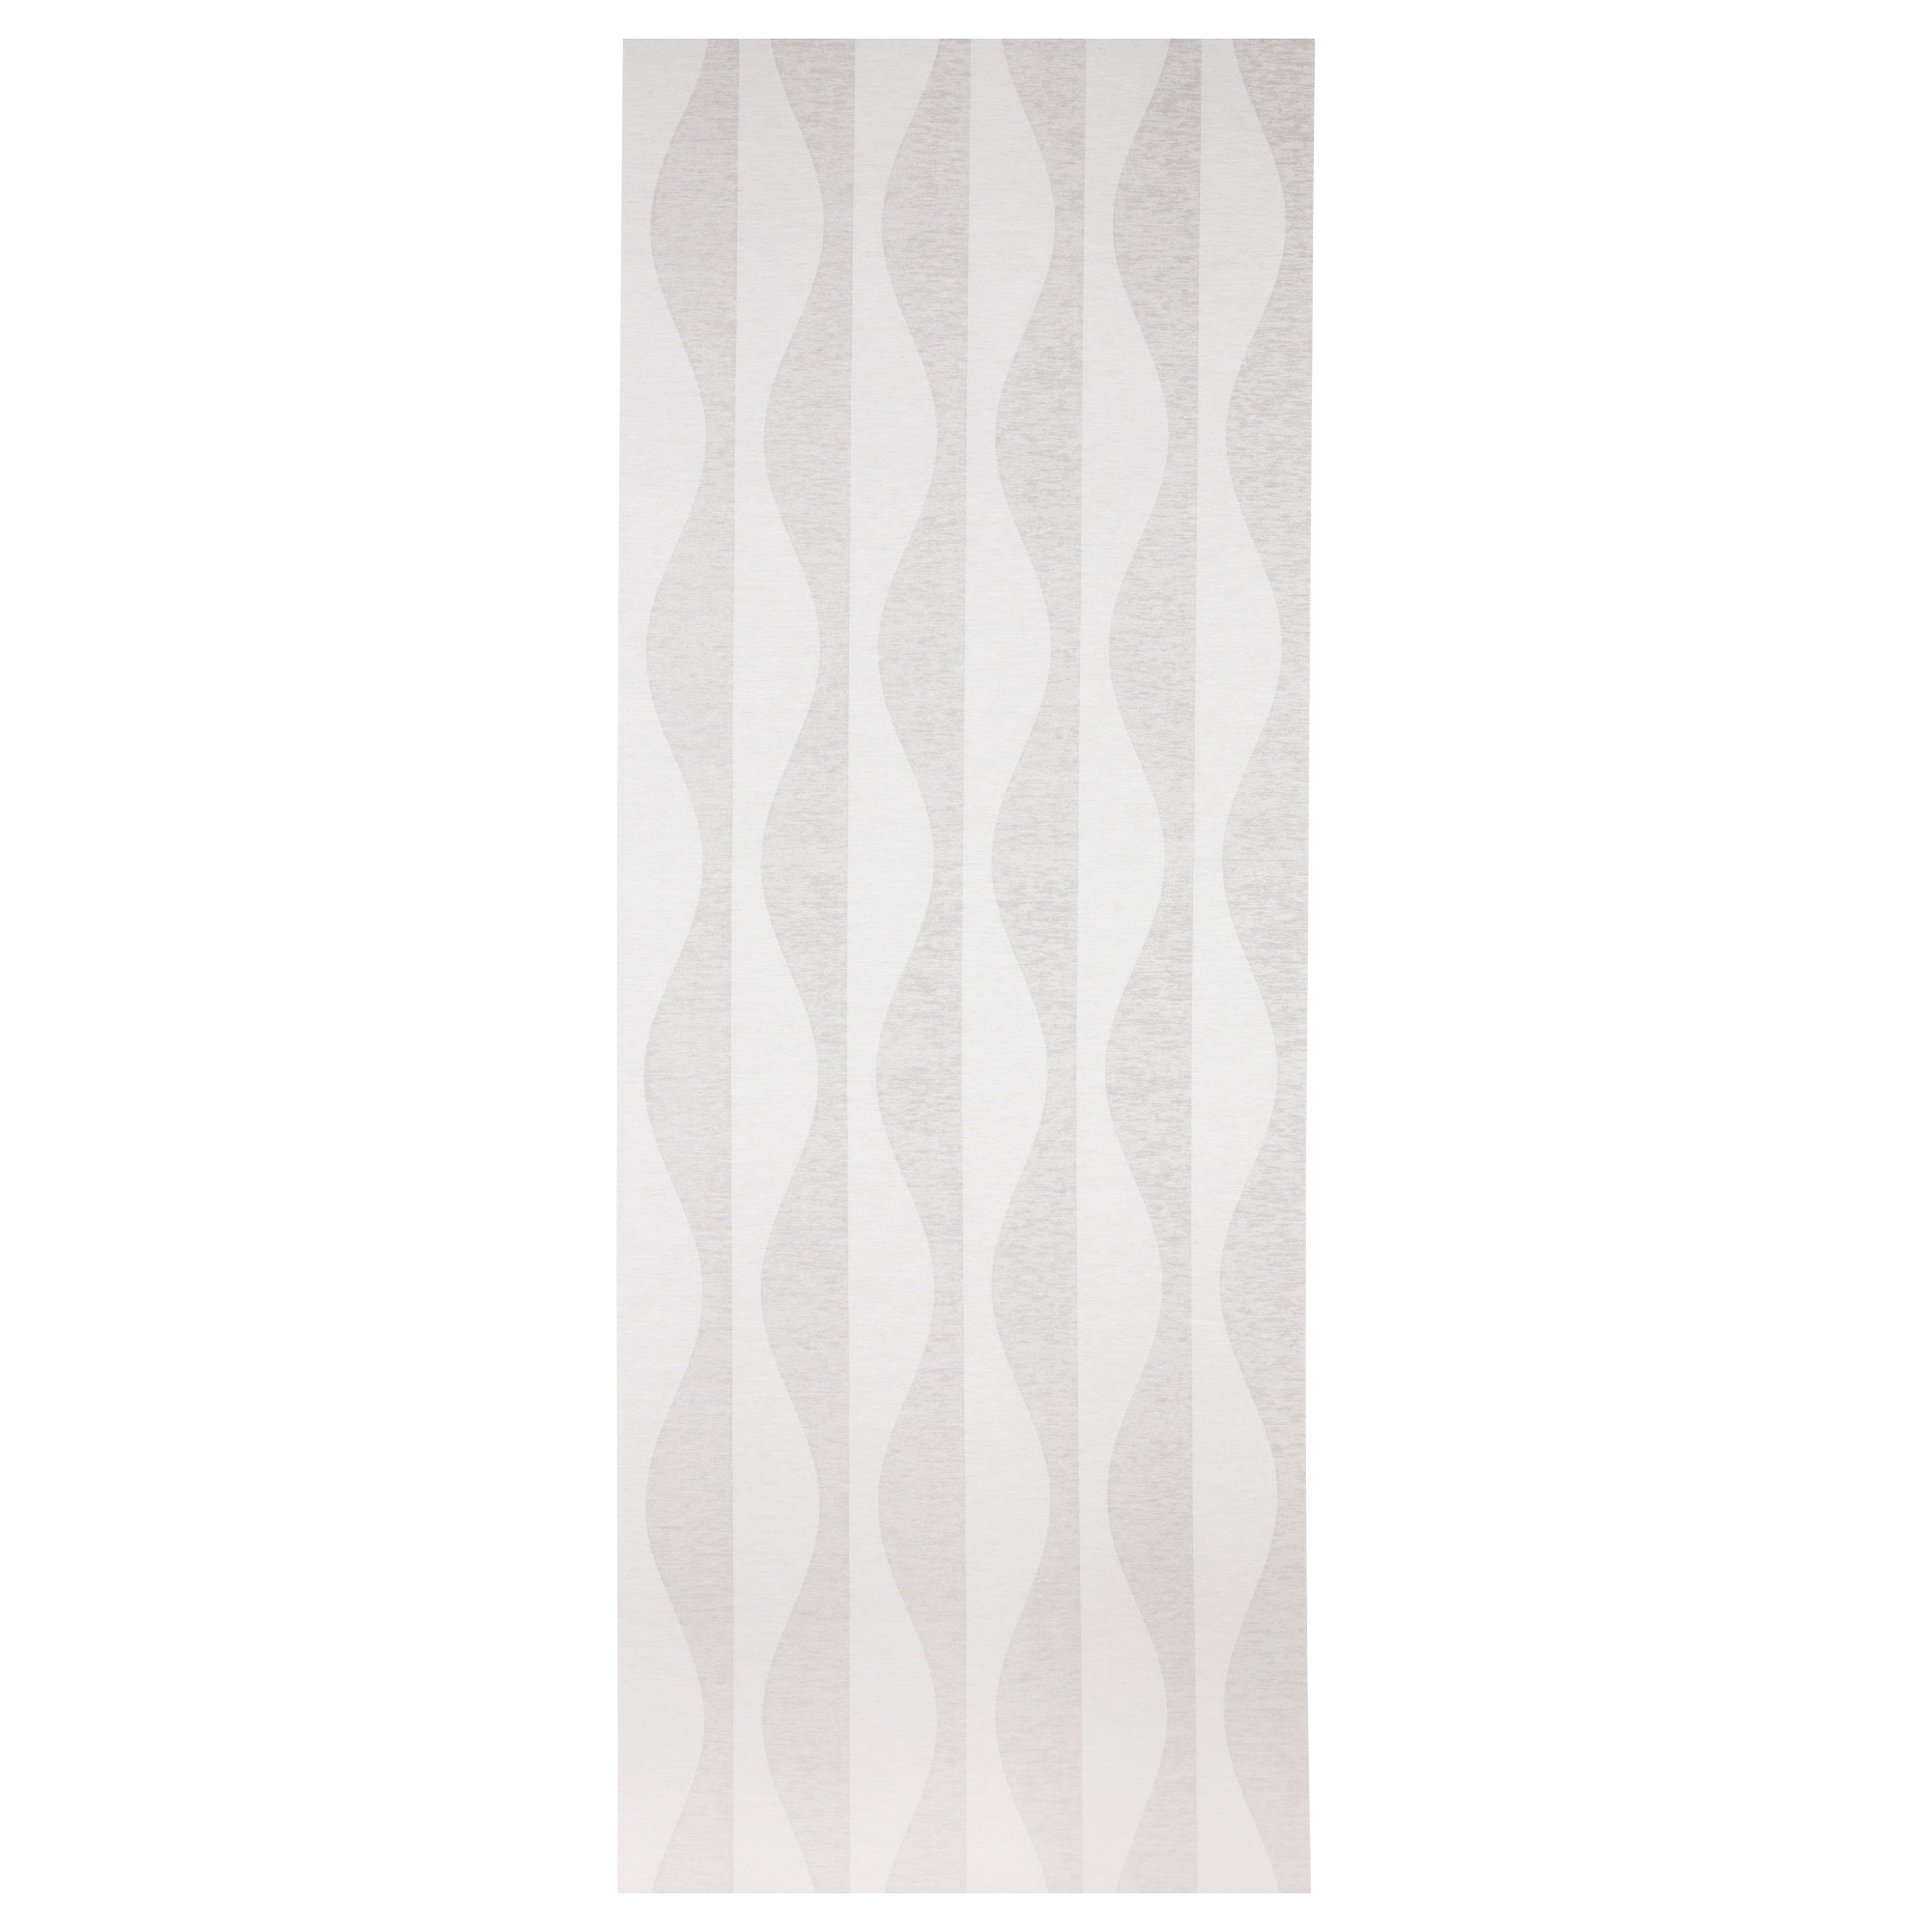 Ikea flat panel curtains - Murruta Panel Curtain White Length 118 Width 24 Weight 7